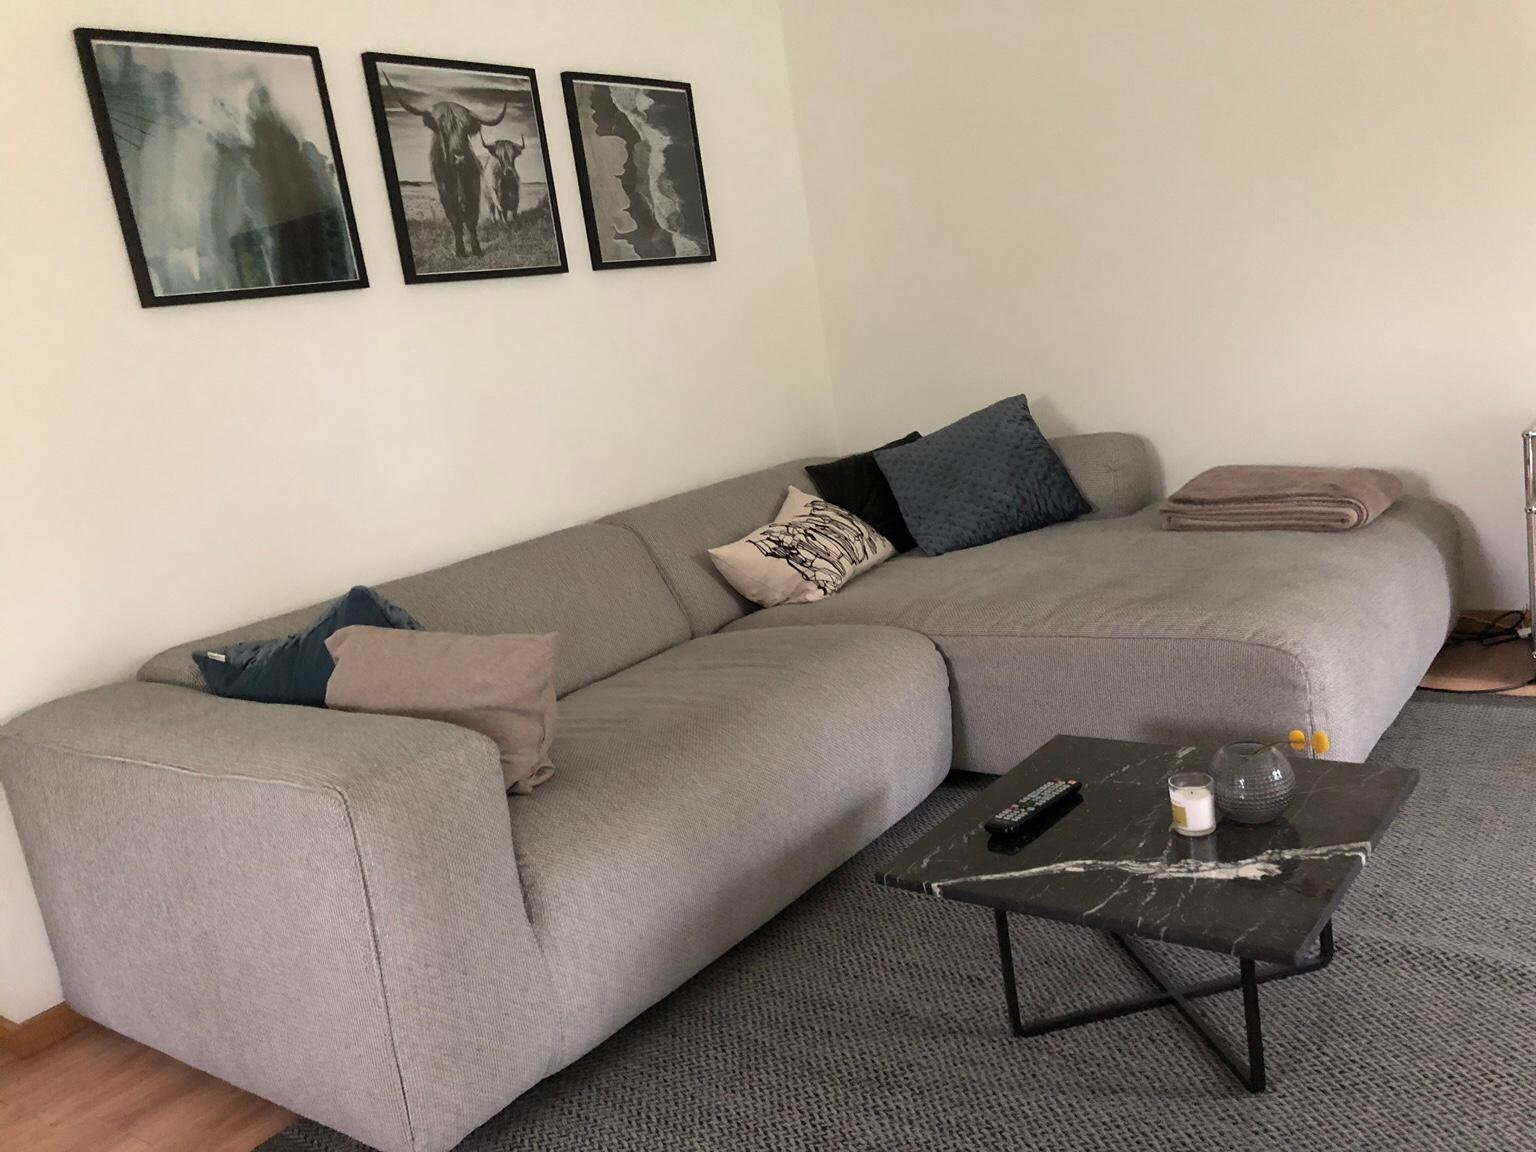 Rolf Benz Freistil Lounge Sofa Ecksofa Grau In 80801 Munich For 1 850 00 For Sale Shpock